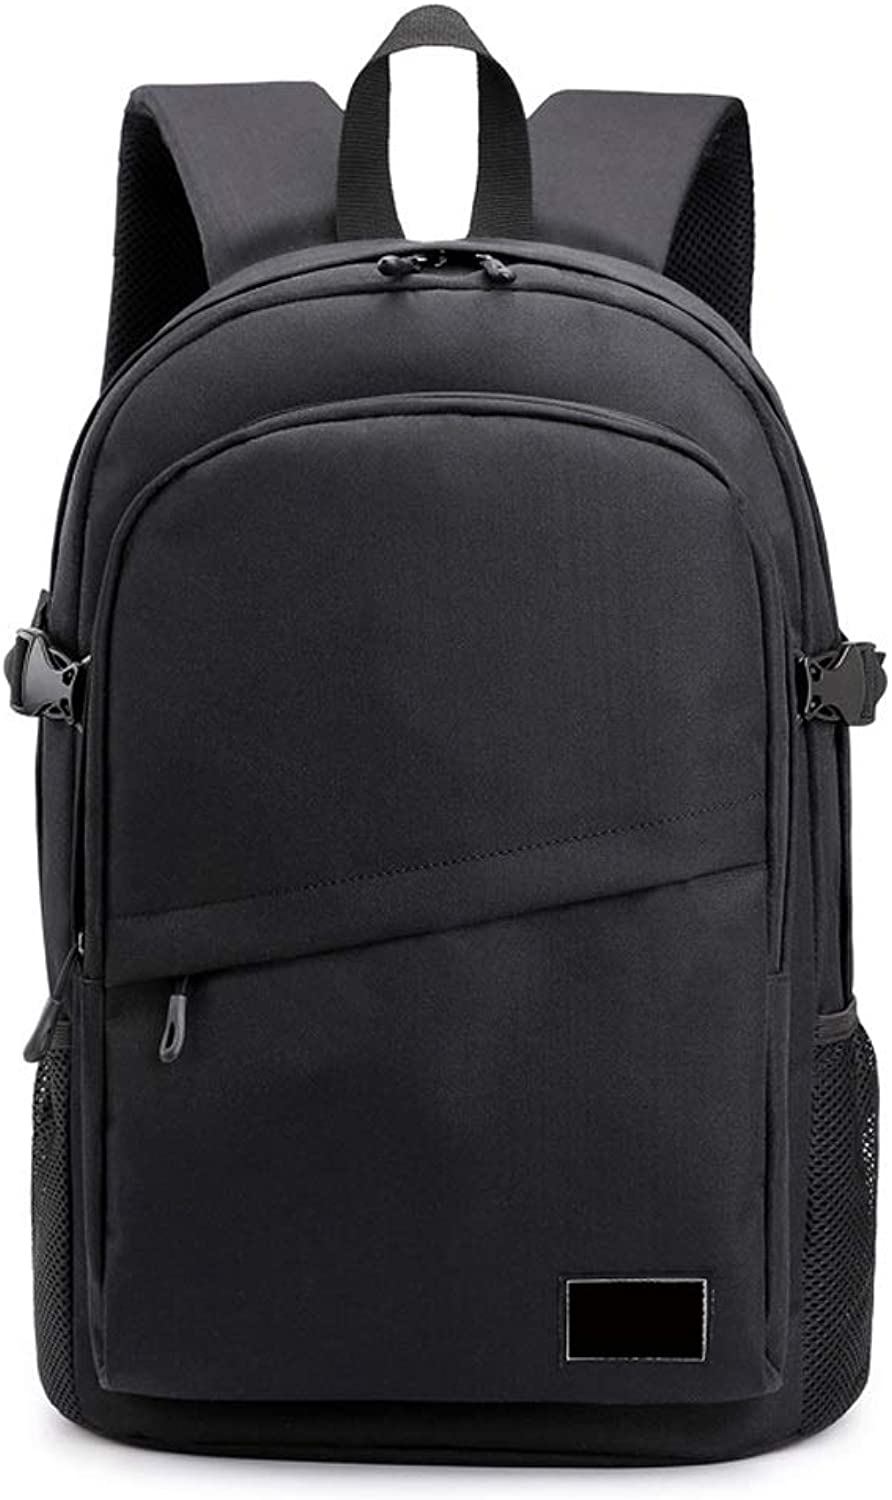 Backpack Men's Fashion Computer Backpack for Adult Men and Women, Casual Versatile Simple LargeCapacity Backpack Can Accommodate Computer Size 15 Inches (color   Black)